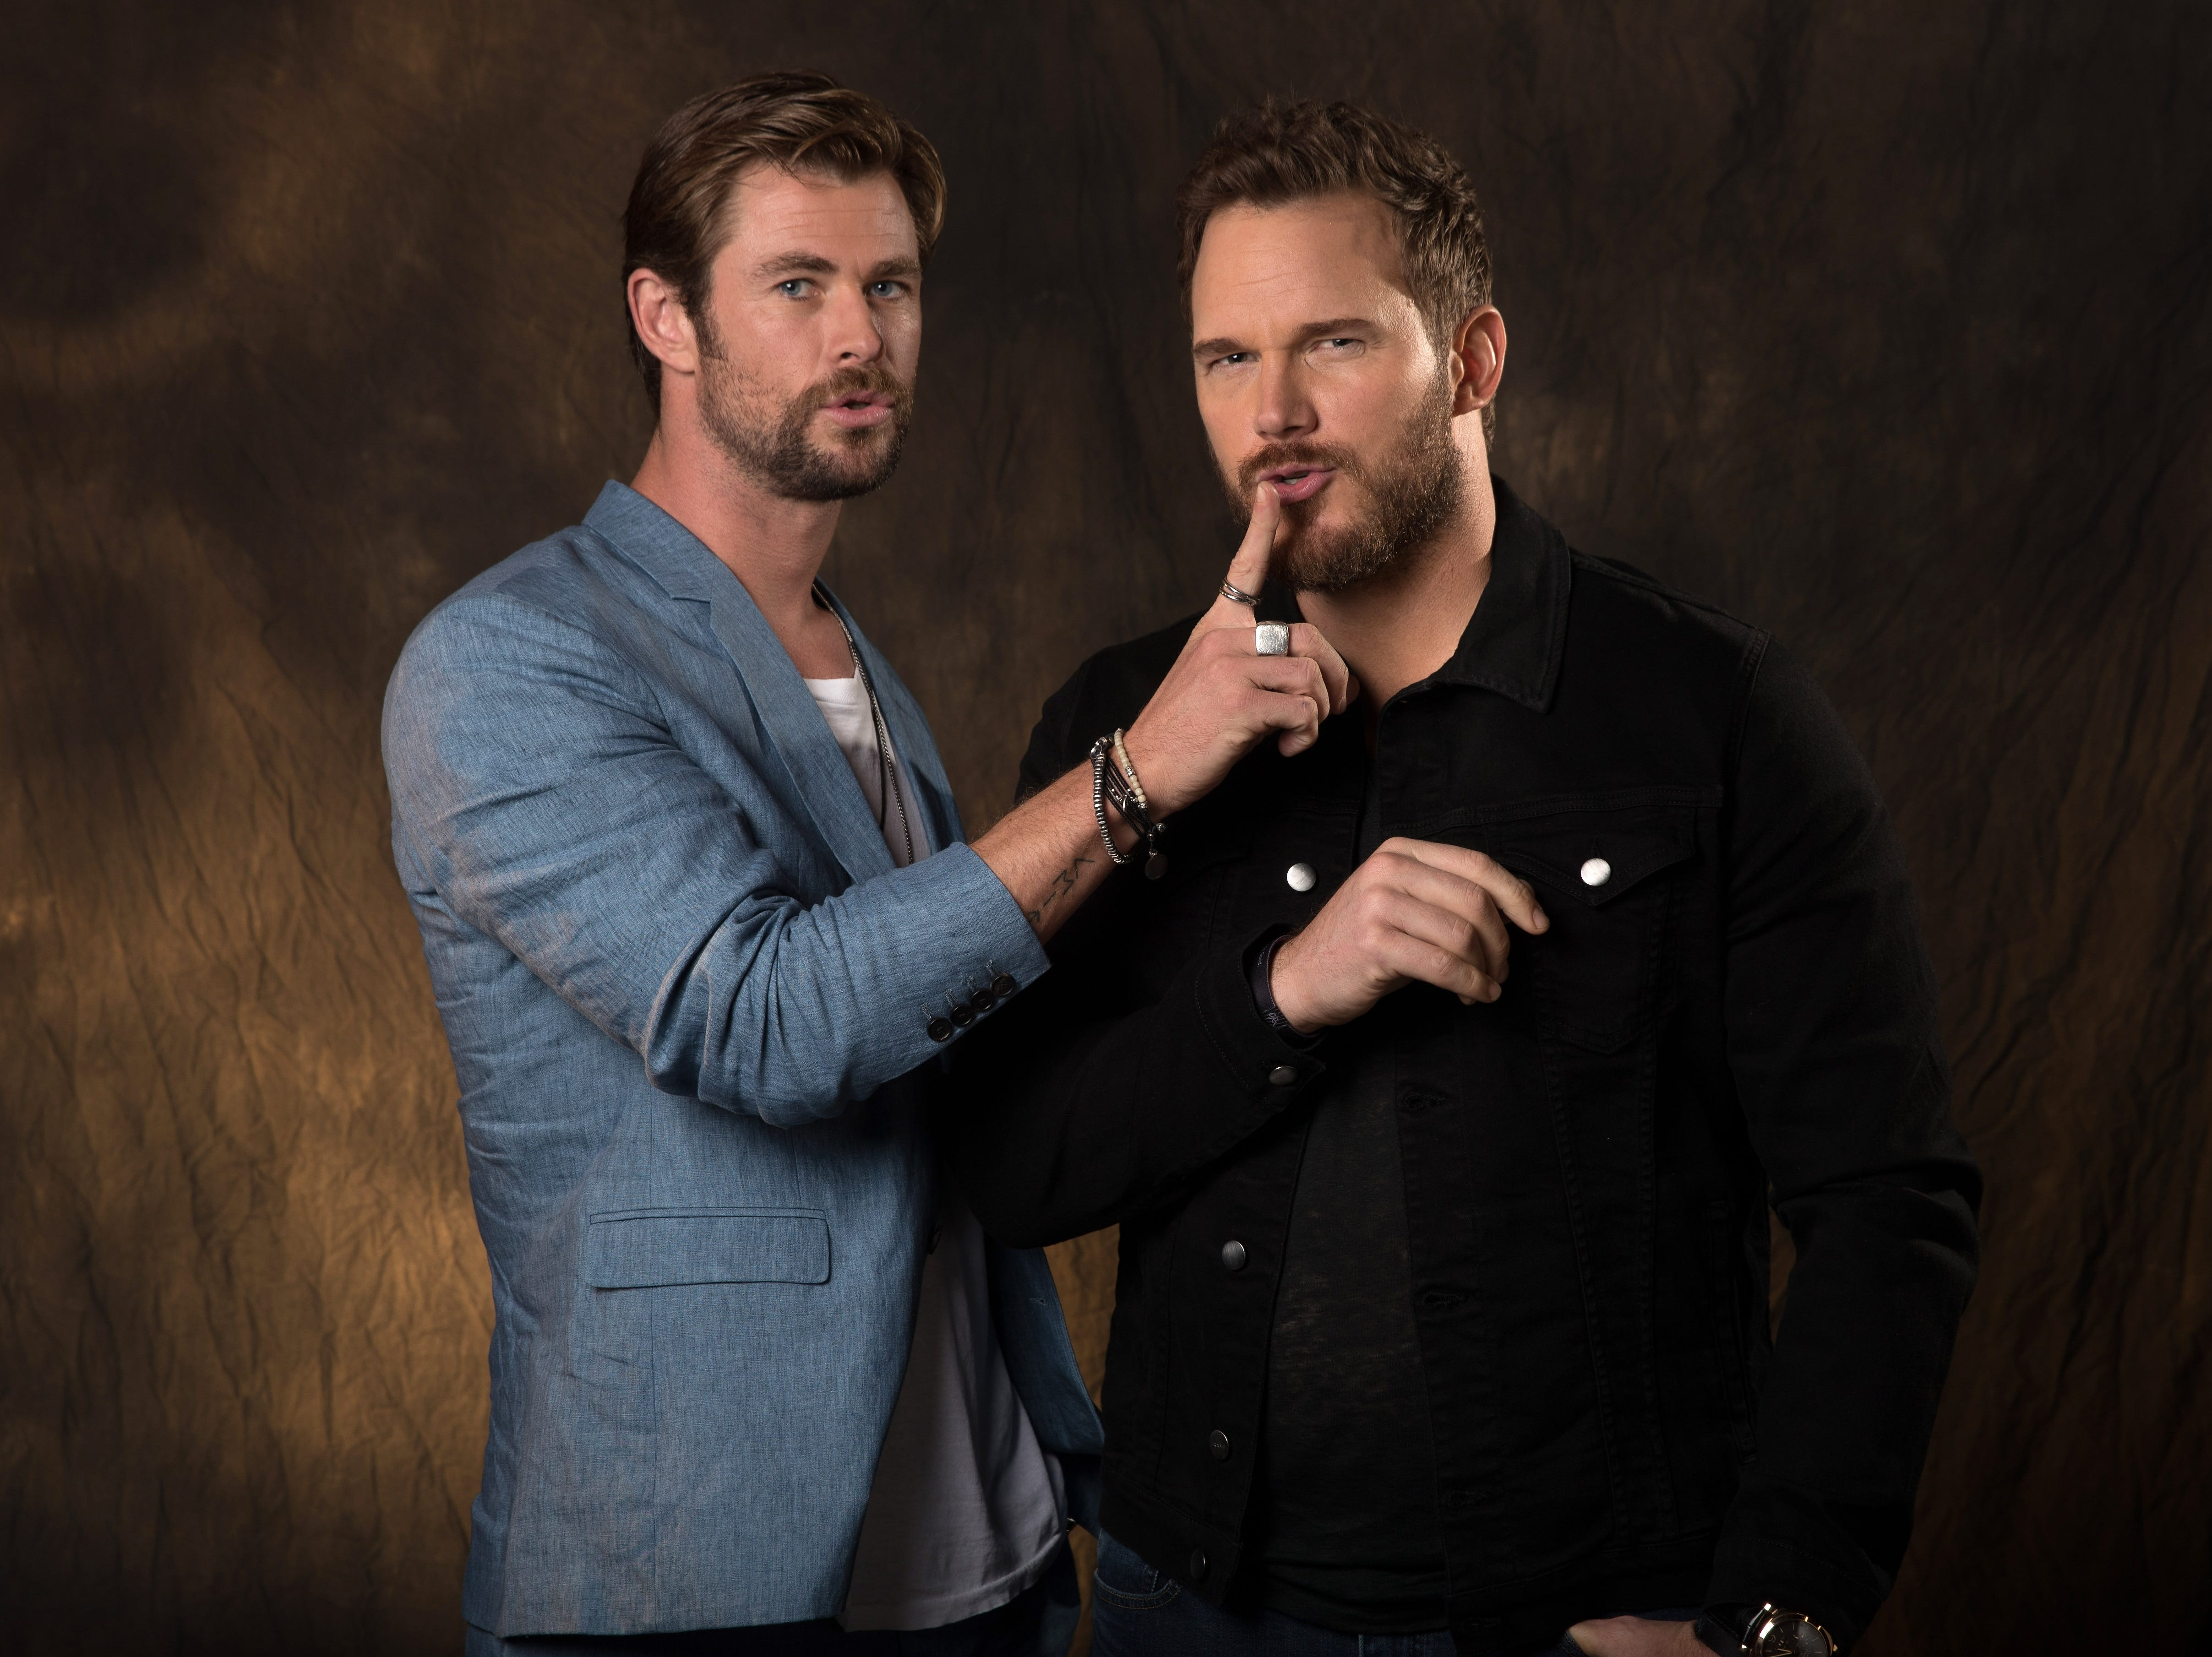 4/22/18 4:36:11 PM -- Beverly Hills, CA  --  Chris Hemsworth and Chris Pratt pose for a portrait at the Montage Hotel in Beverly Hills, CA while promoting Avengers- Infinity War.